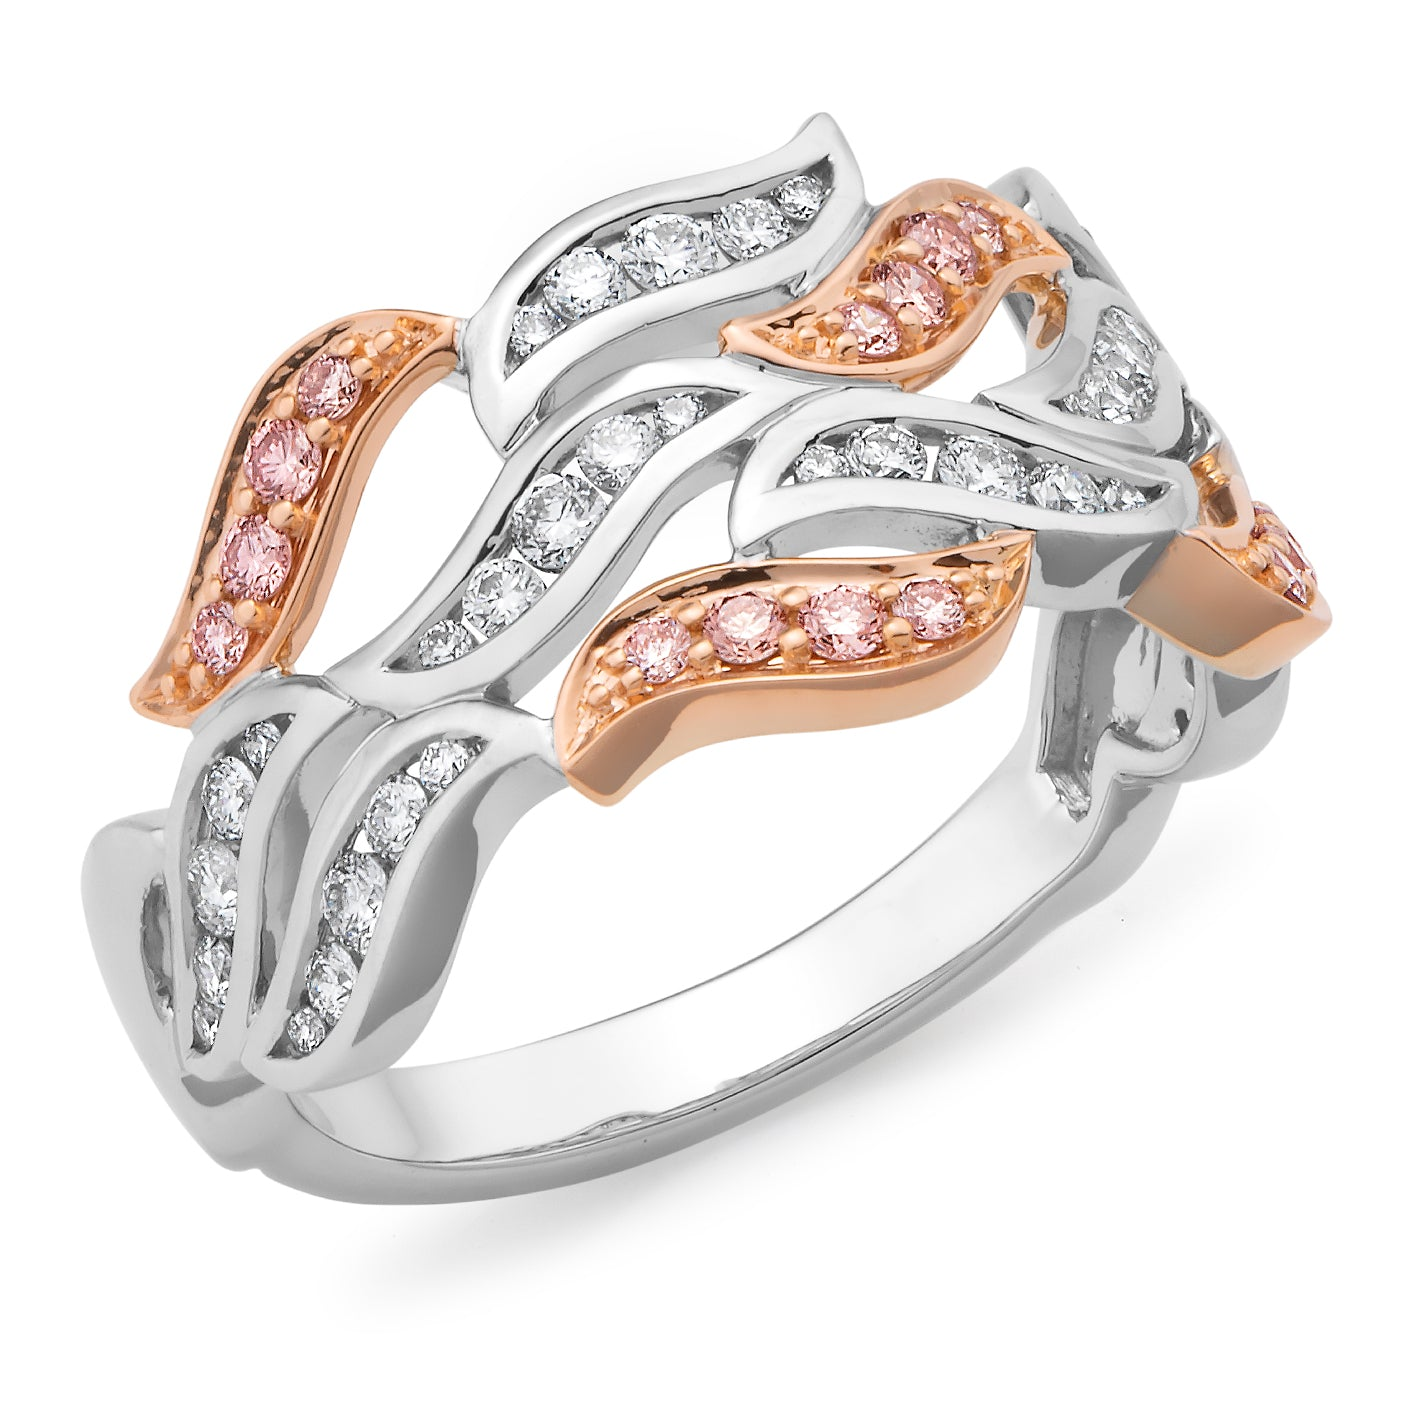 DIAMOND BEAD SET RING PINK CAVIAR IN 9CT WHITE & ROSE GOLD (SI3 JK)         TDW 0.58CT